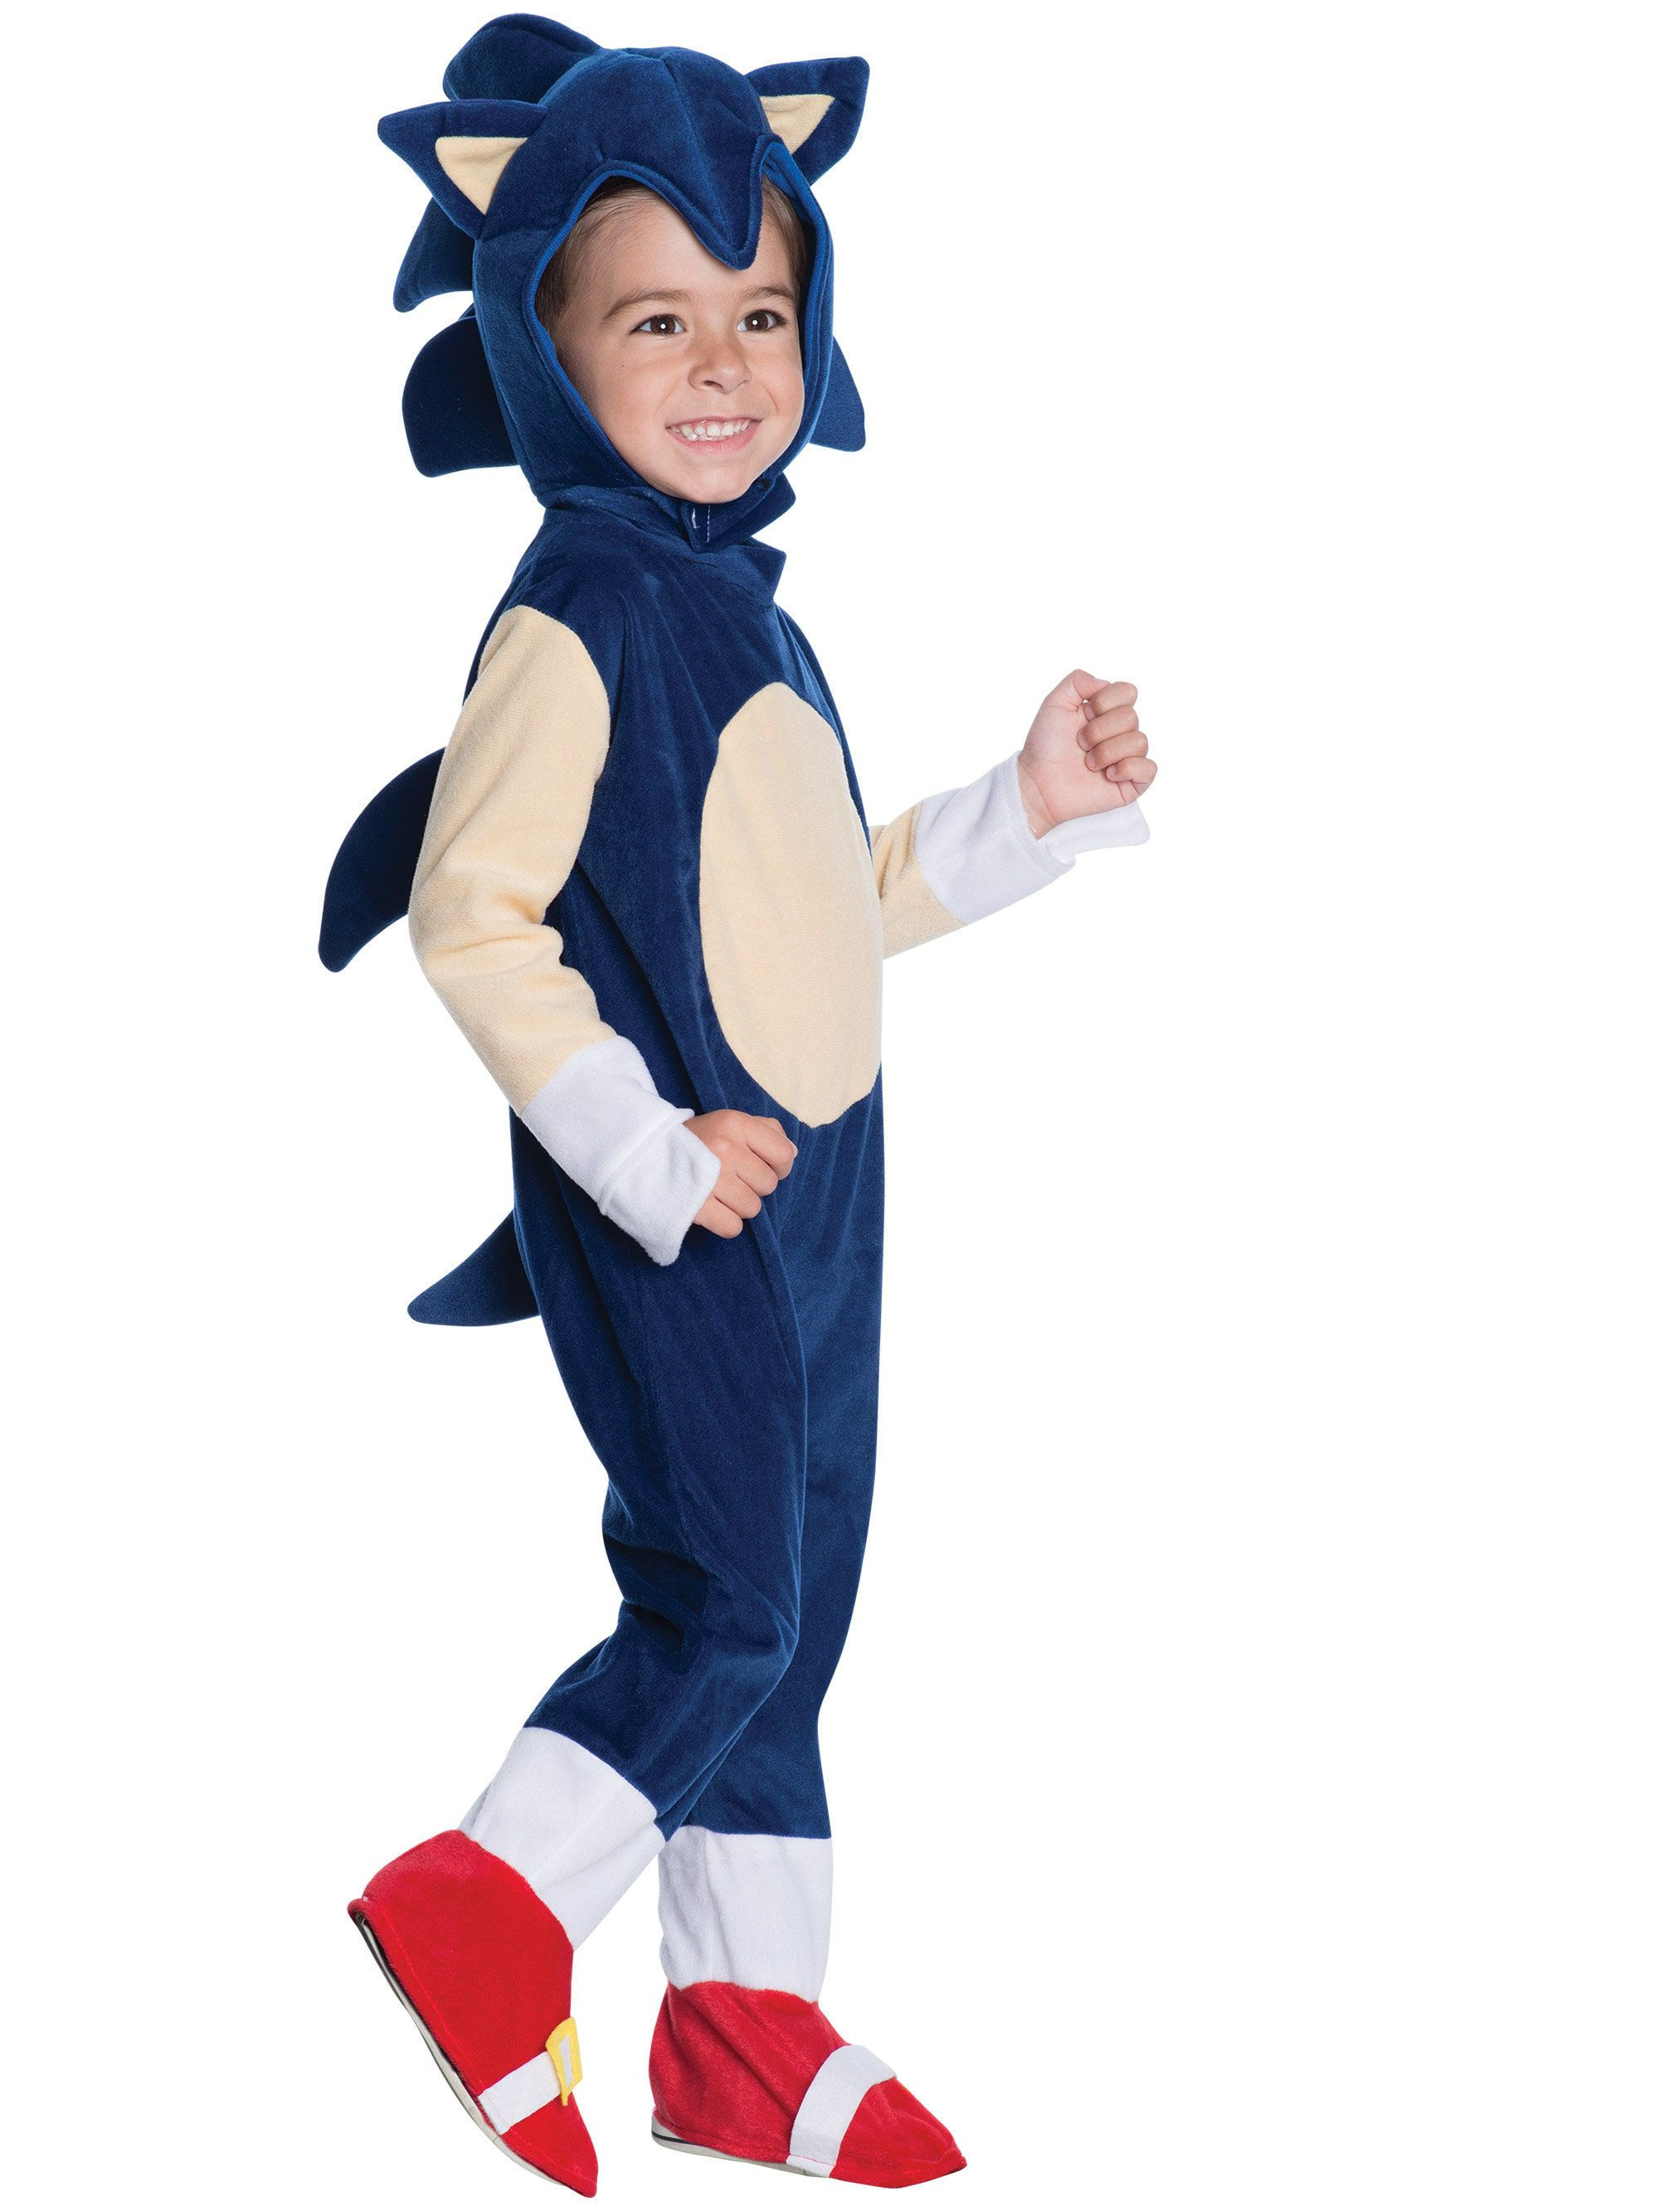 Toddler Sonic Romper Costume Toddler Baby Toddler Costumes For 2019 Wholesale Halloween Costumes